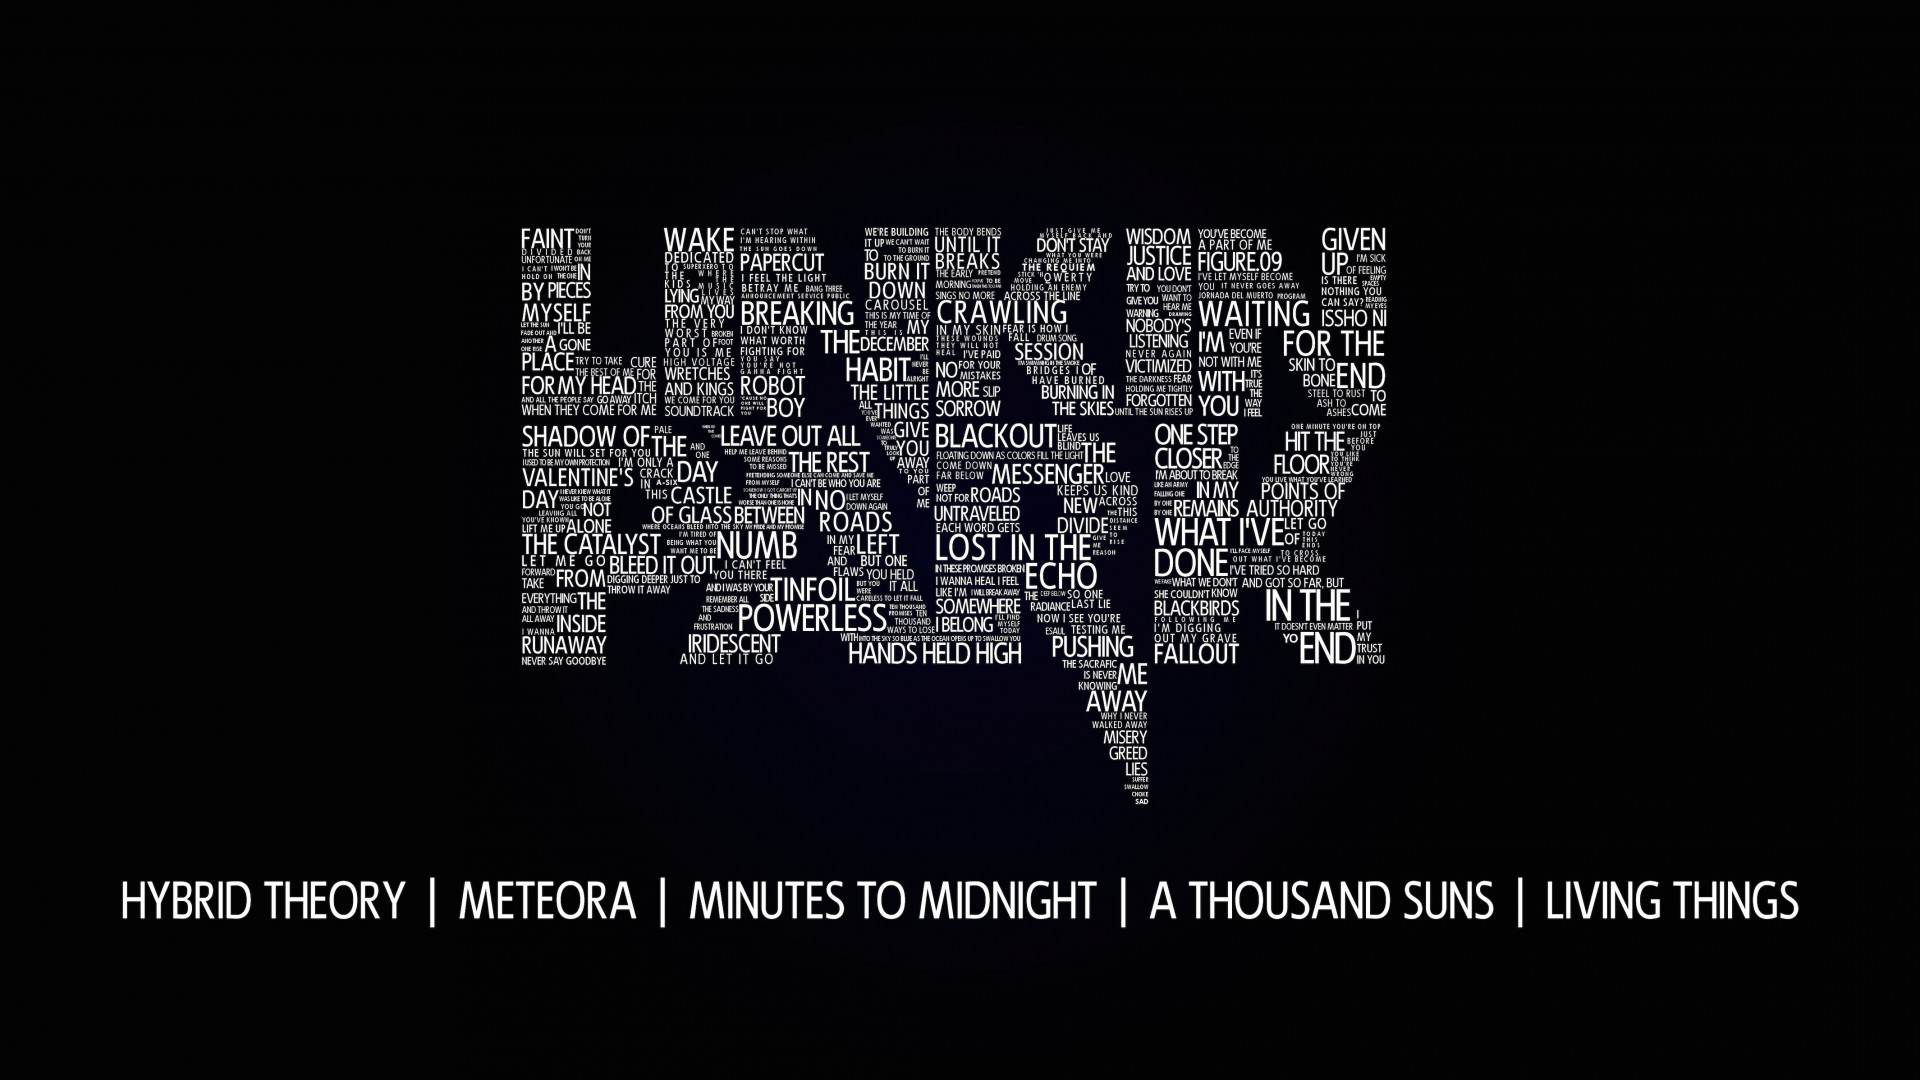 Linkin Park Typography Wallpaper for Desktop 1920x1080